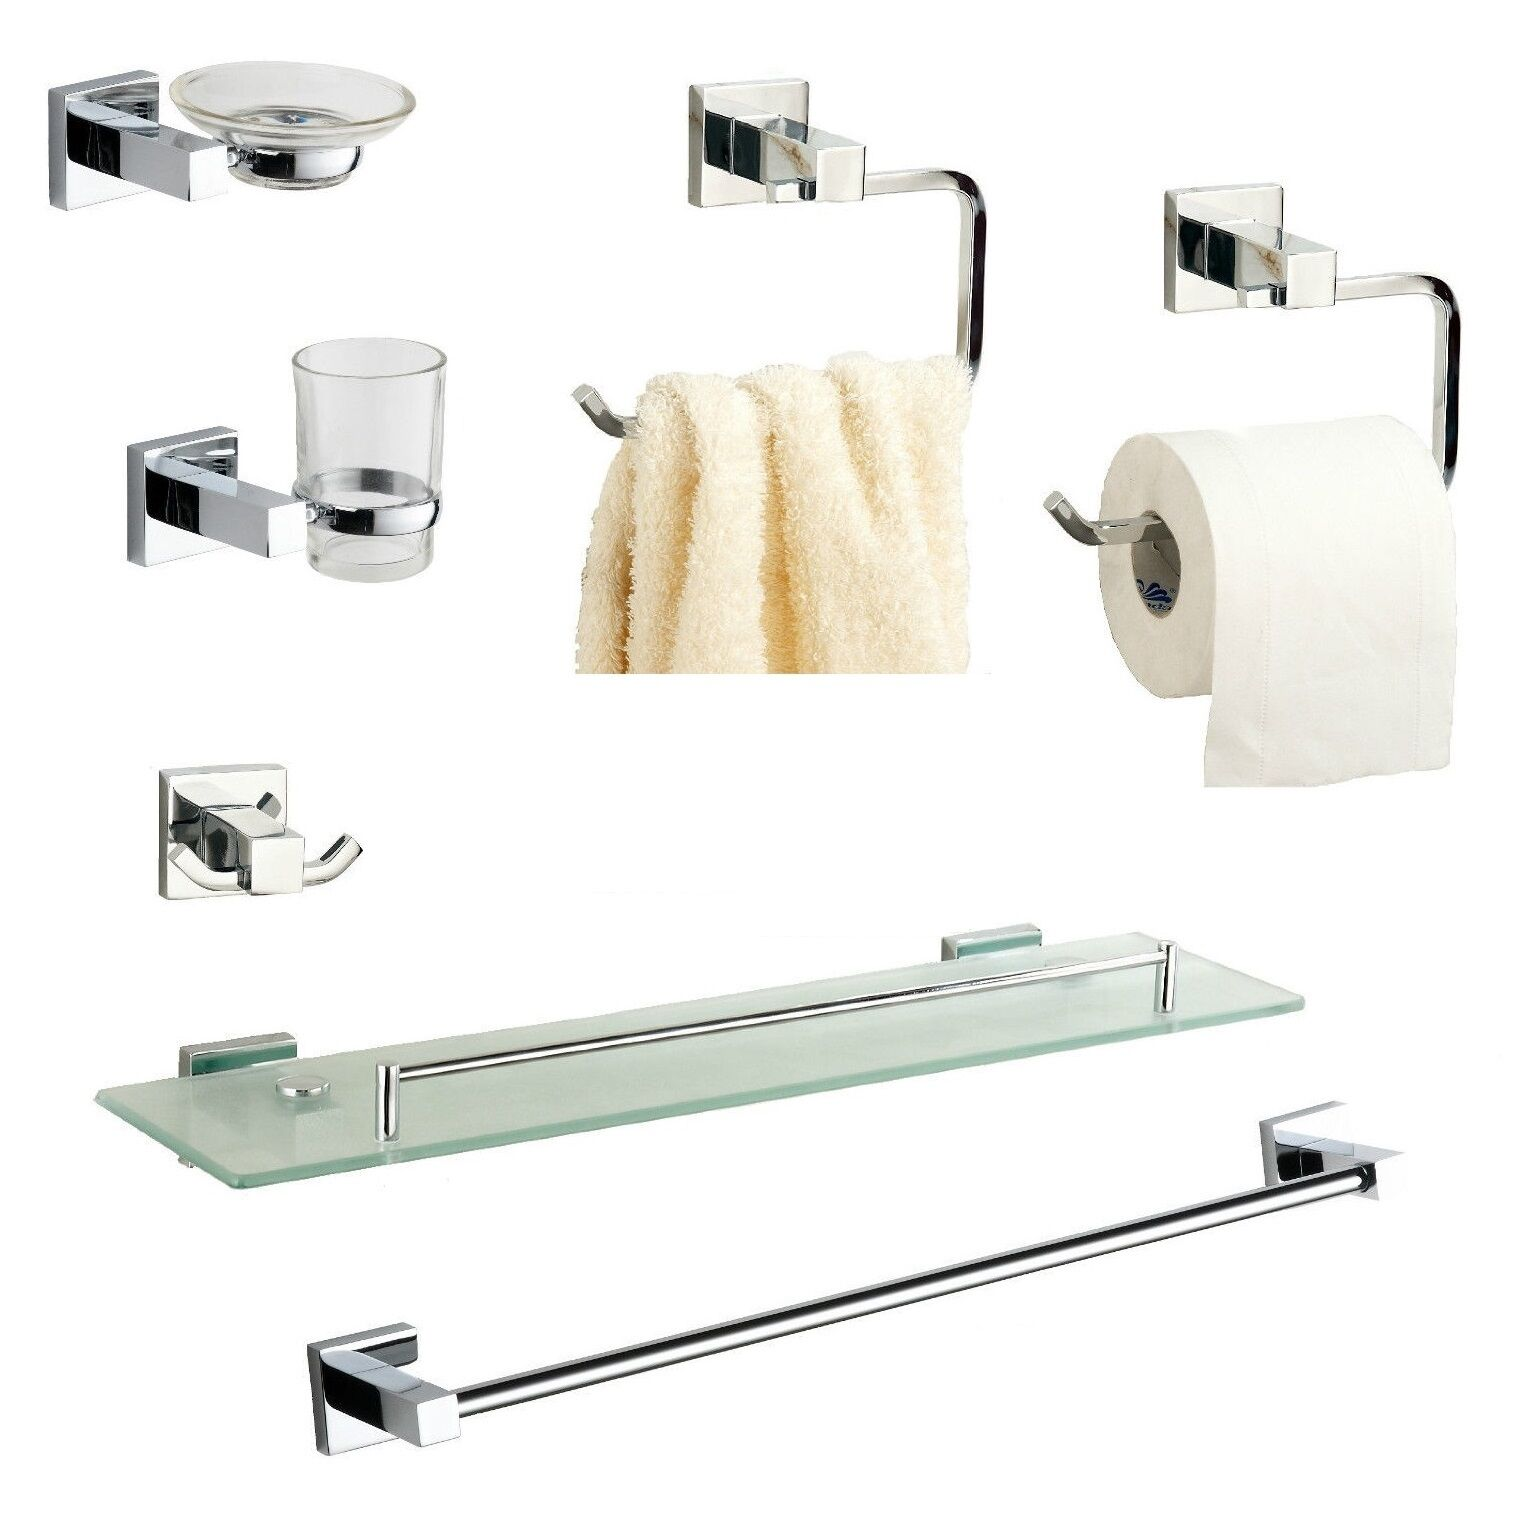 BATHROOM ACCESSORIES, CHROME Square Cubic Style Wall Mounted Fittings Included - £6.39